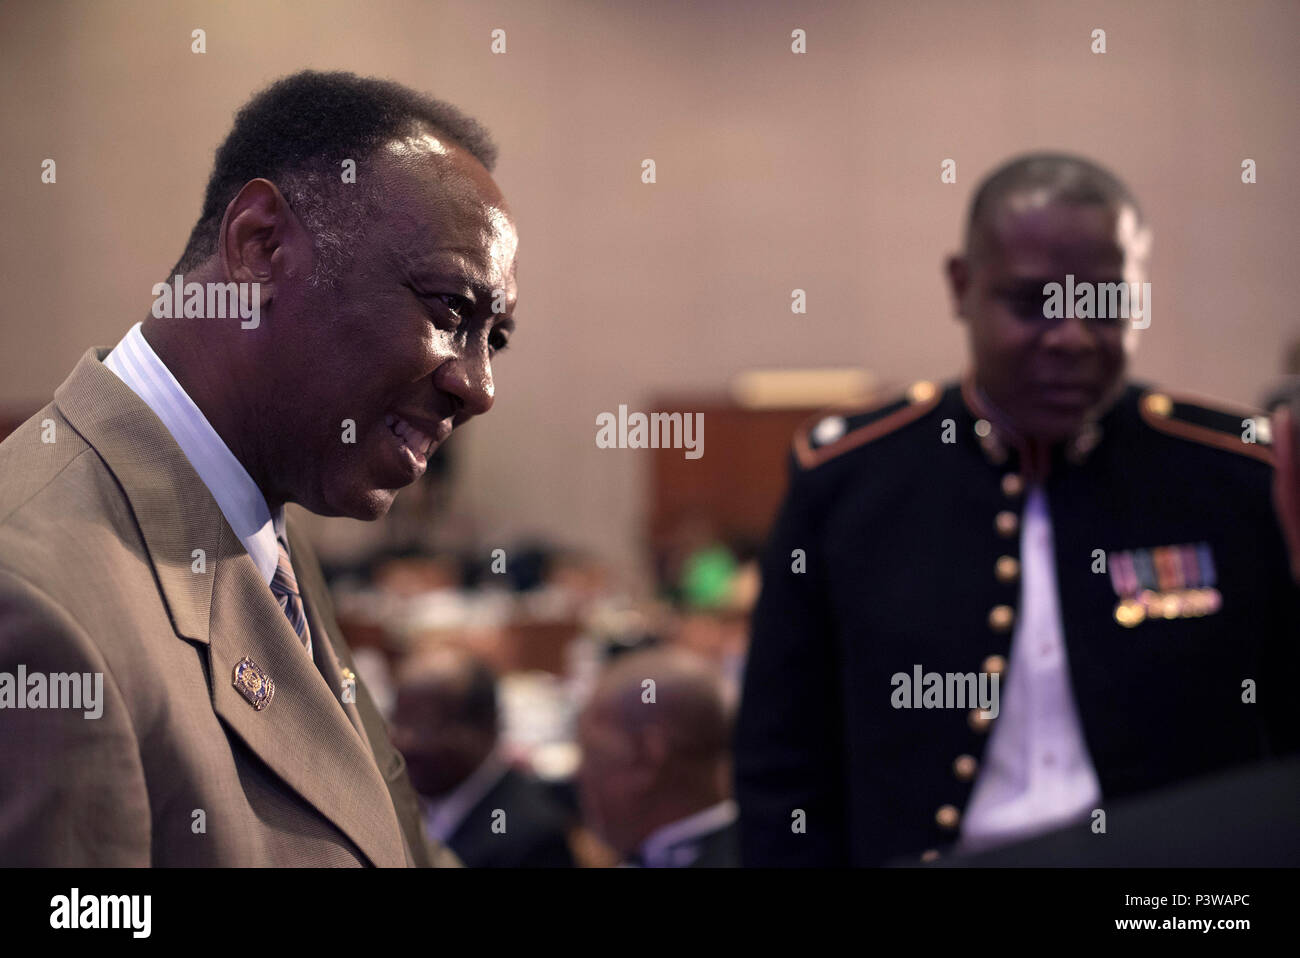 Col. Reginald L. Hairston talks with fraternity members during the Omega Psi Phi Fraternity's 80th Grand Conclave in Las Vegas July 23. This event gave the Marine Corps the opportunity to engage with qualified officer prospects and key influencers. - Stock Image